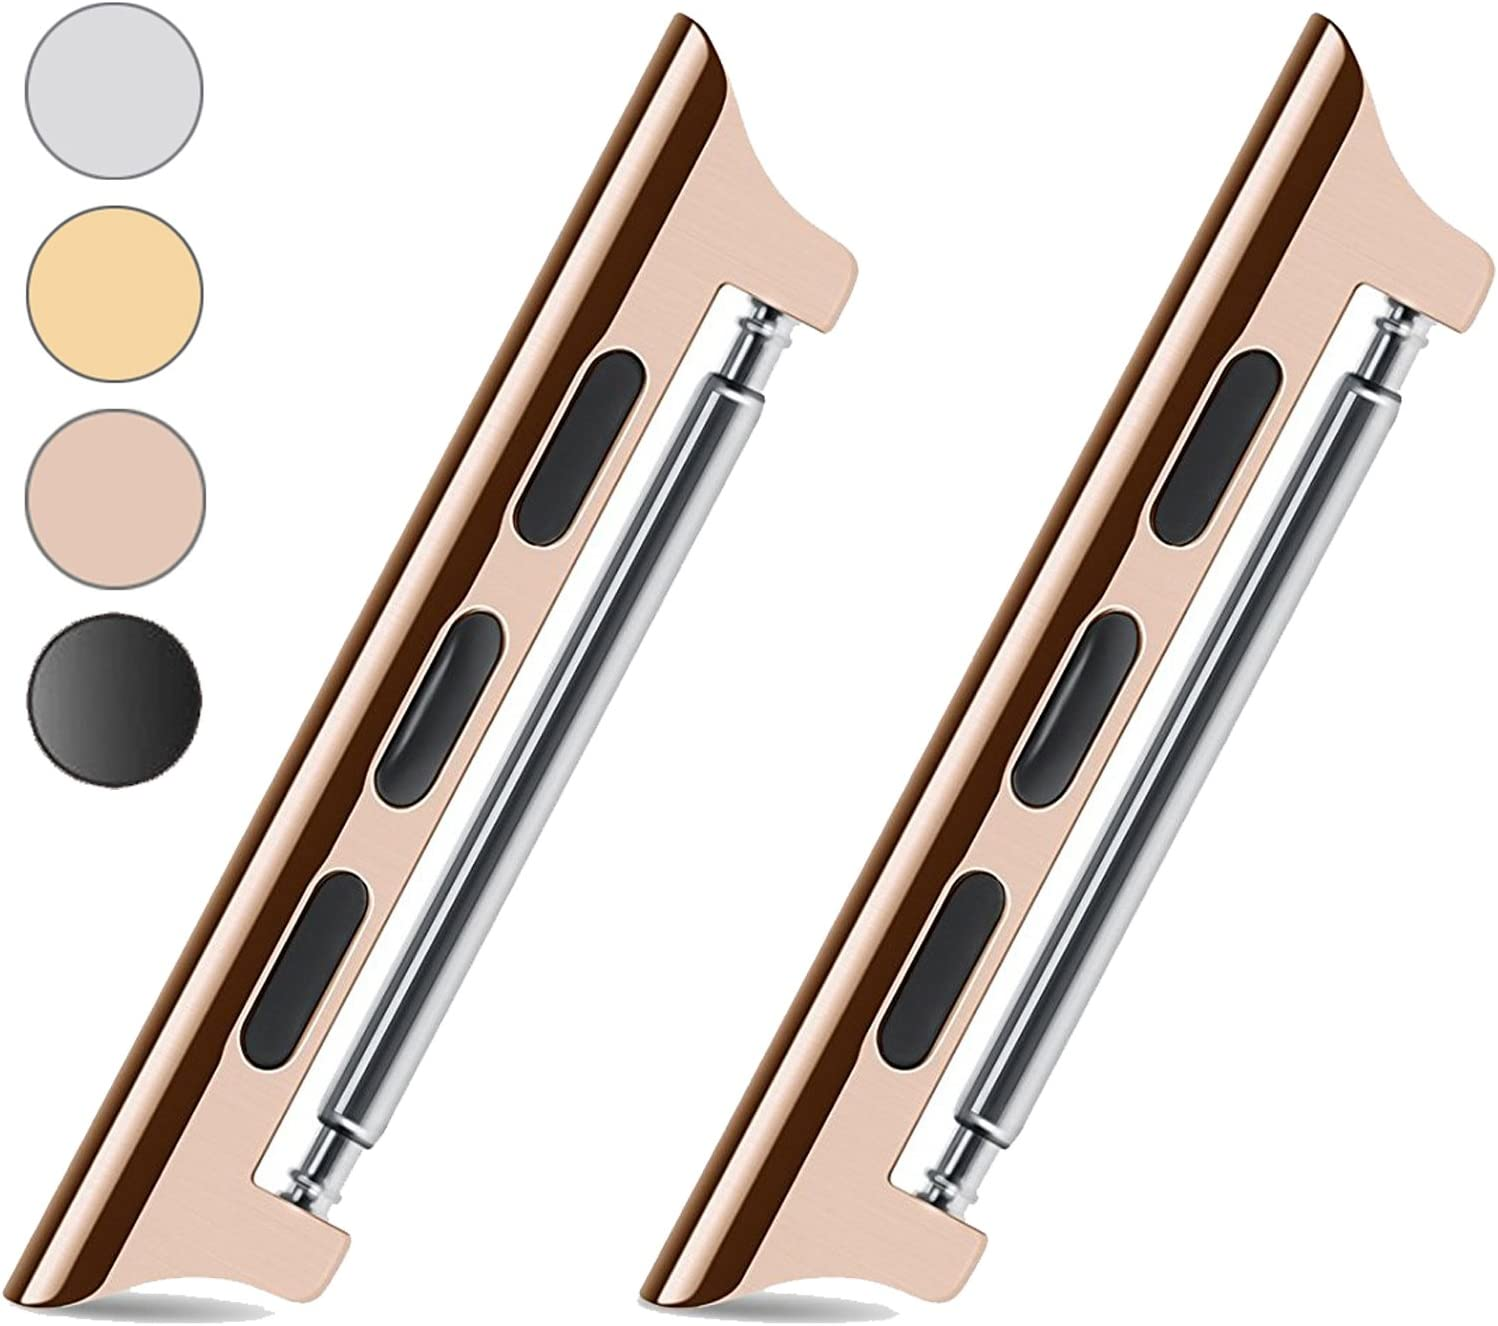 VICTHY Metal Watch Band Adapter/Clasp/ Connector for All Apple Watch Models. No Screws or Screwdriver Needed and Super Easy to Install - 38mm Rose Gold